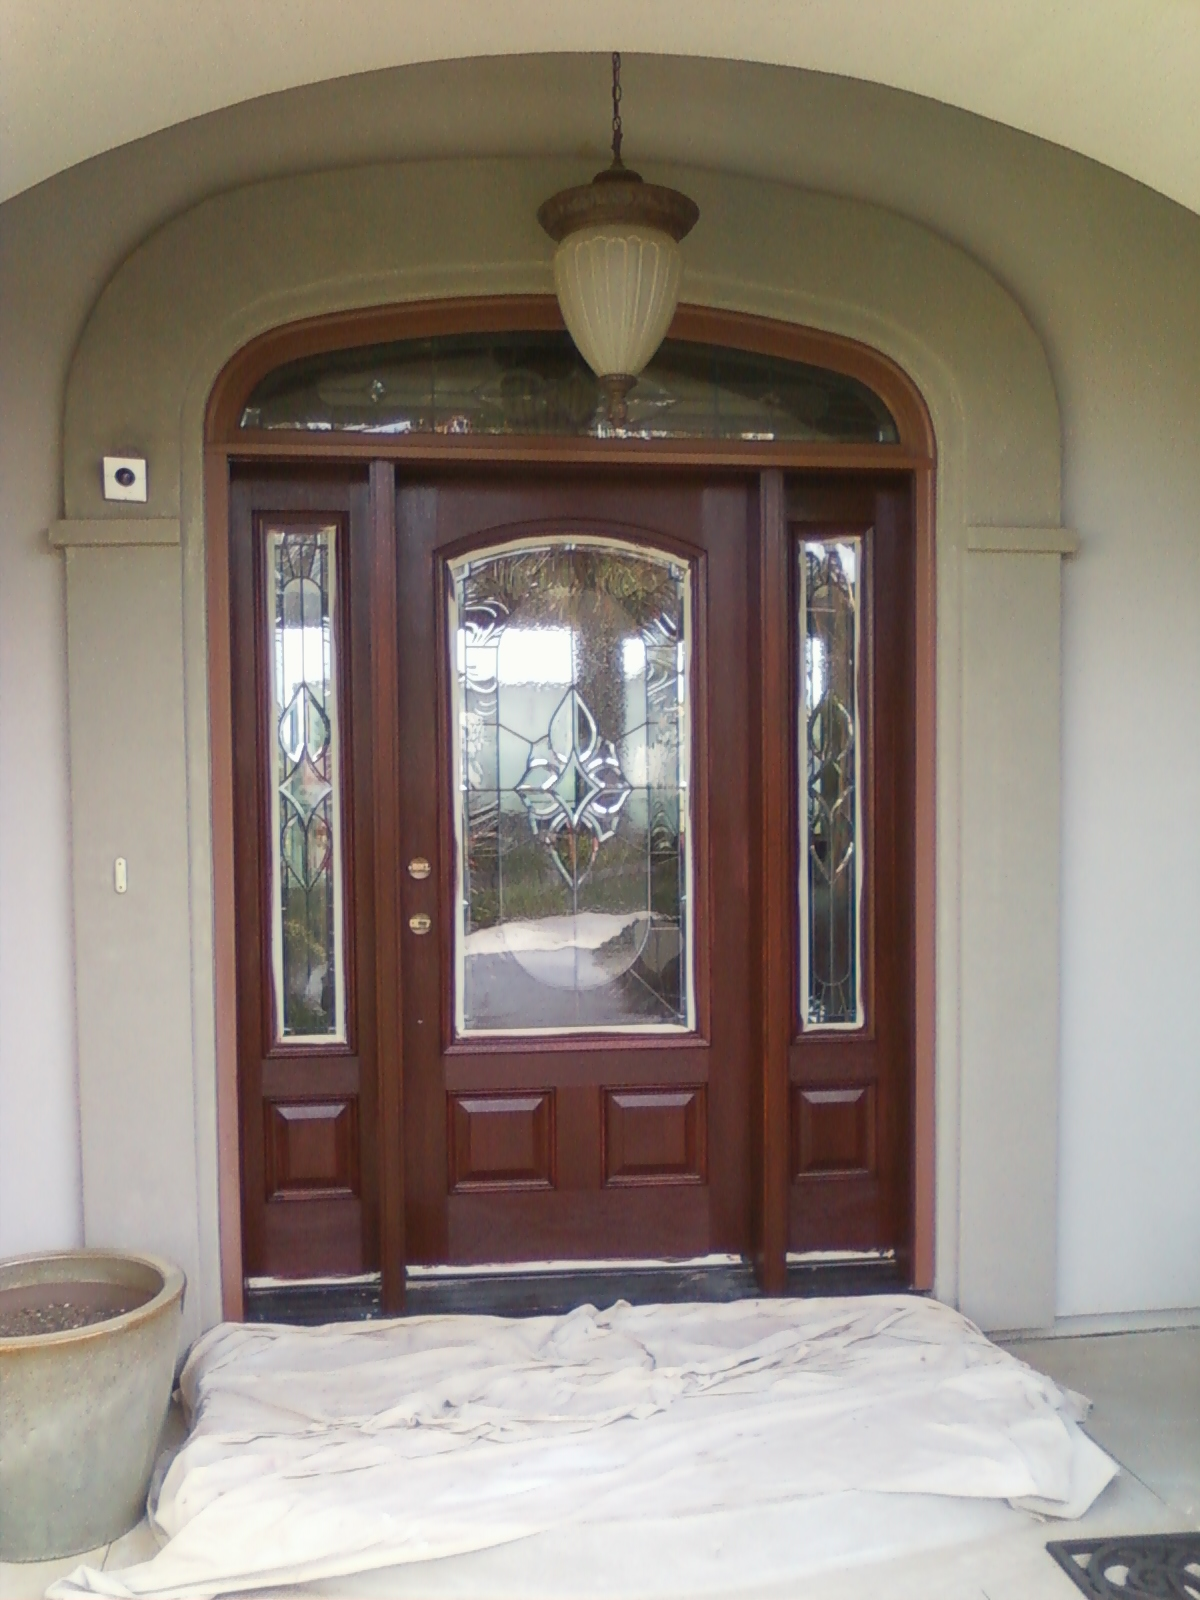 Attirant Consider Your Options Carefully, Because In Order To Change A Prefinished  Door With Opaque Stain, The Surface Will Need To Be Completely Sanded.